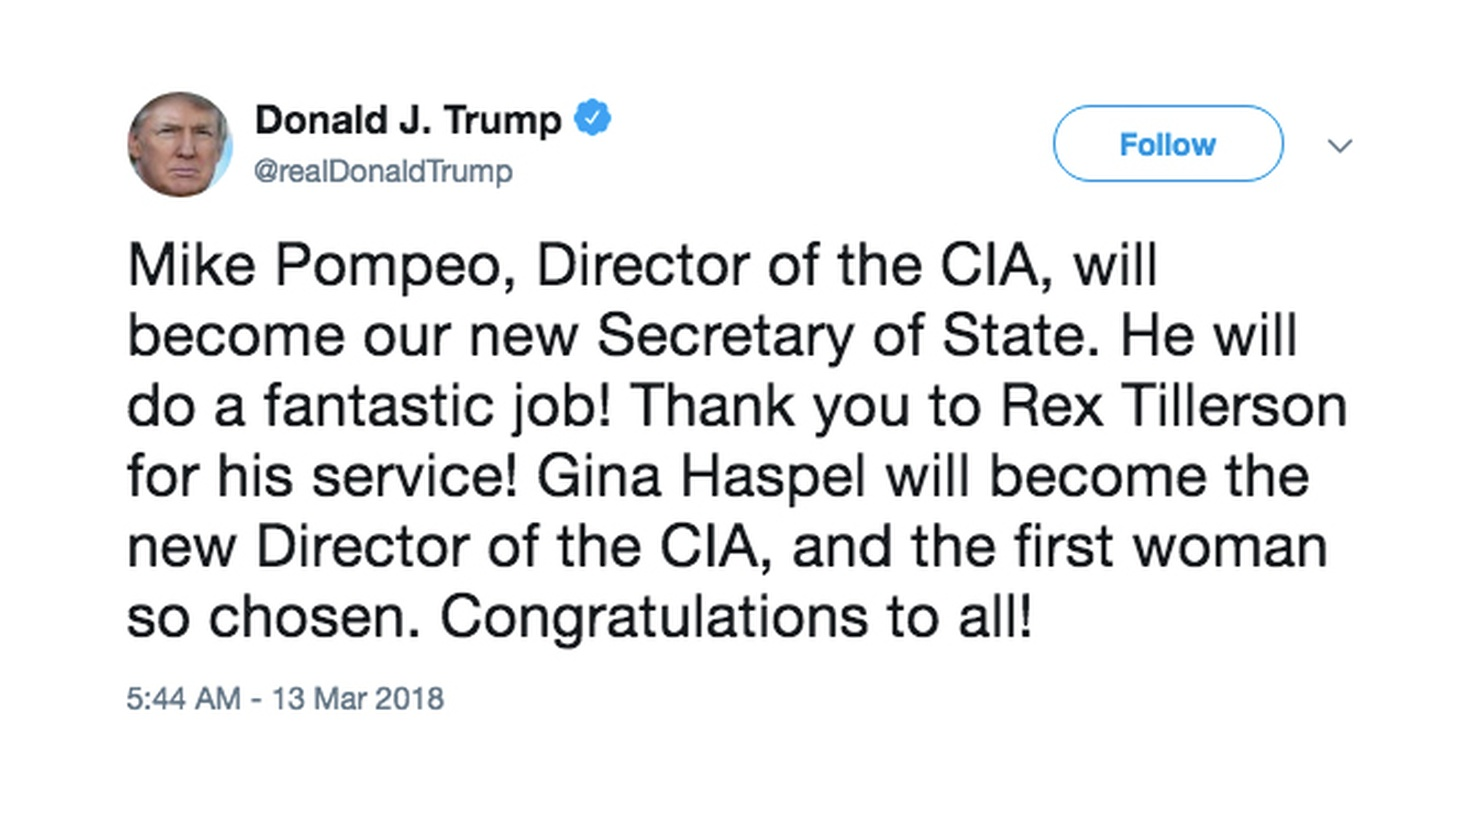 The president uses social media to tell his secretary of state it's over.